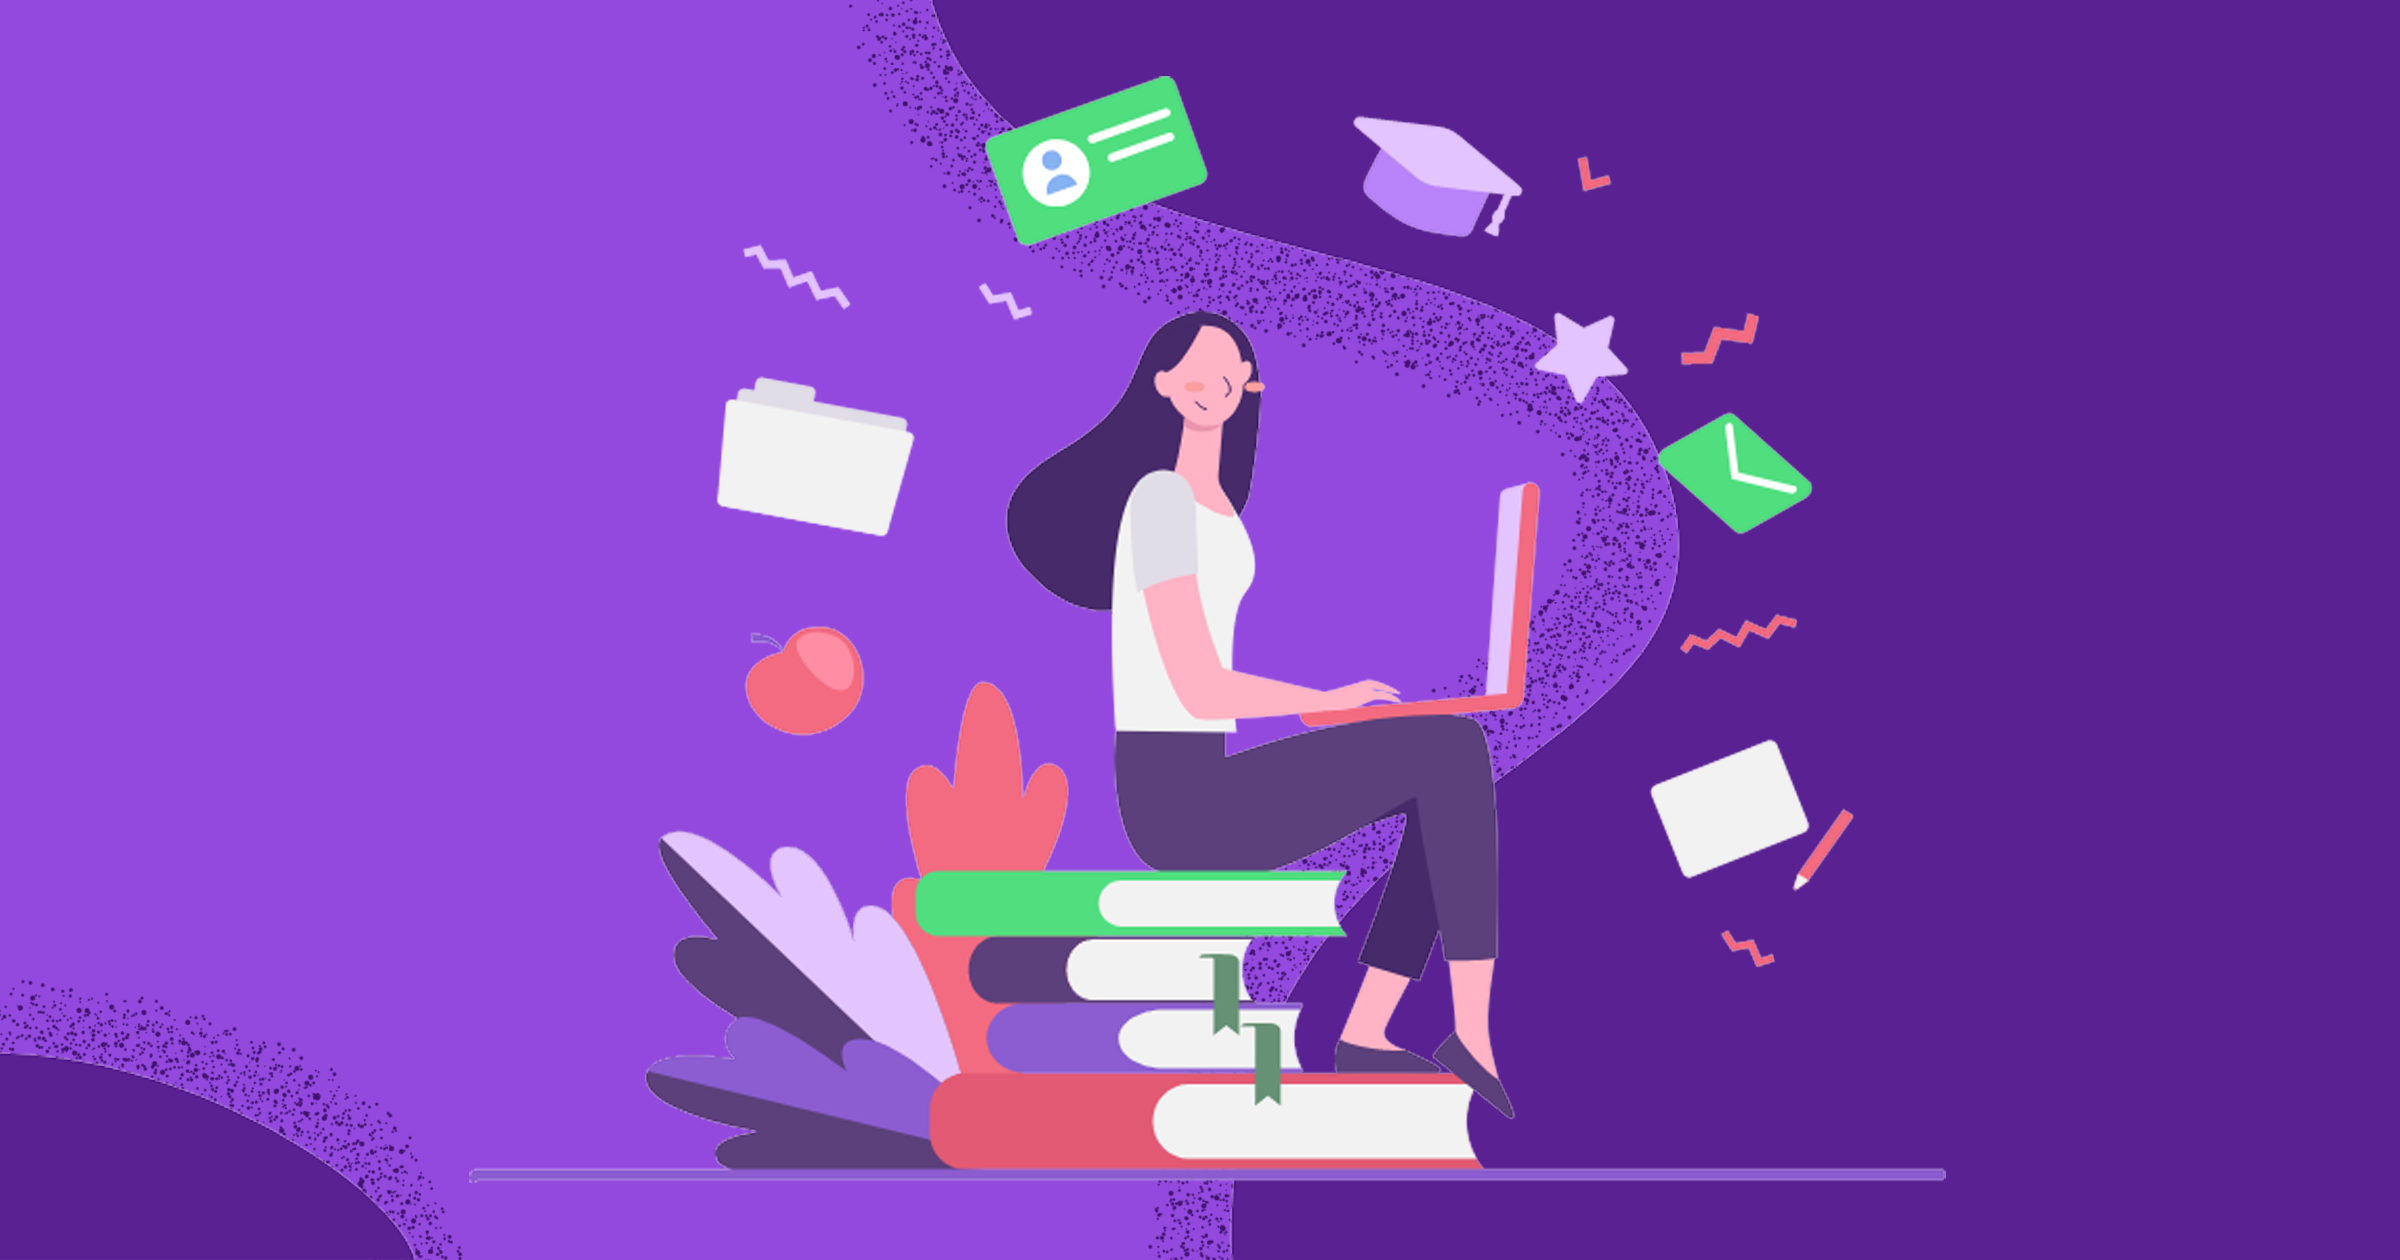 https://spotme.com/wp-content/uploads/2020/06/Adobe-Connect-Review-2020-Virtual-Event-Tech-Guide-hero.png